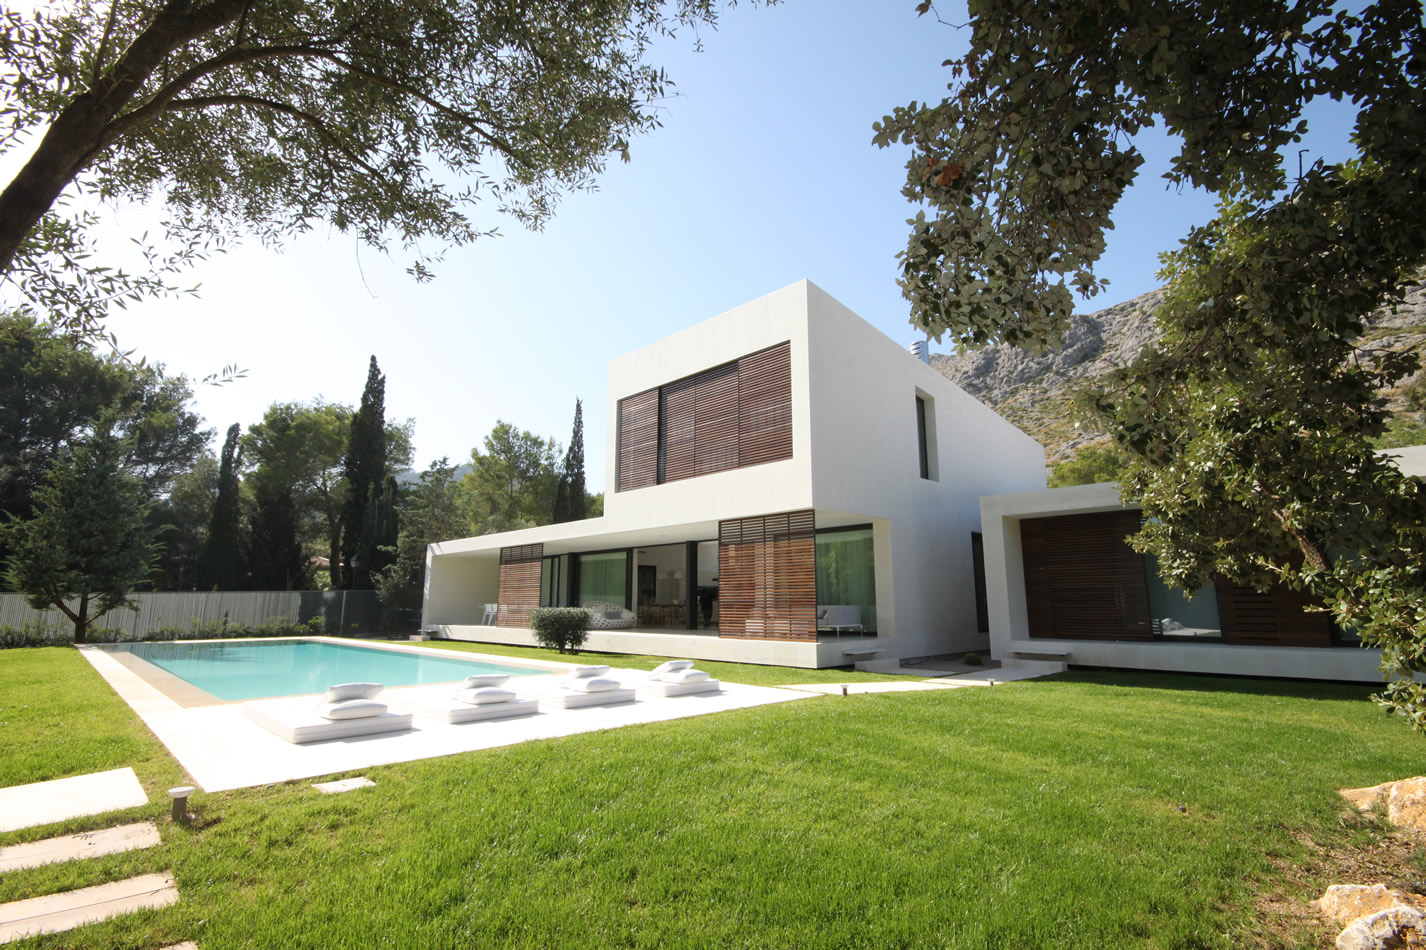 Mallorca villas trends tips and best advice when buying a villa in Mallorca  Property for